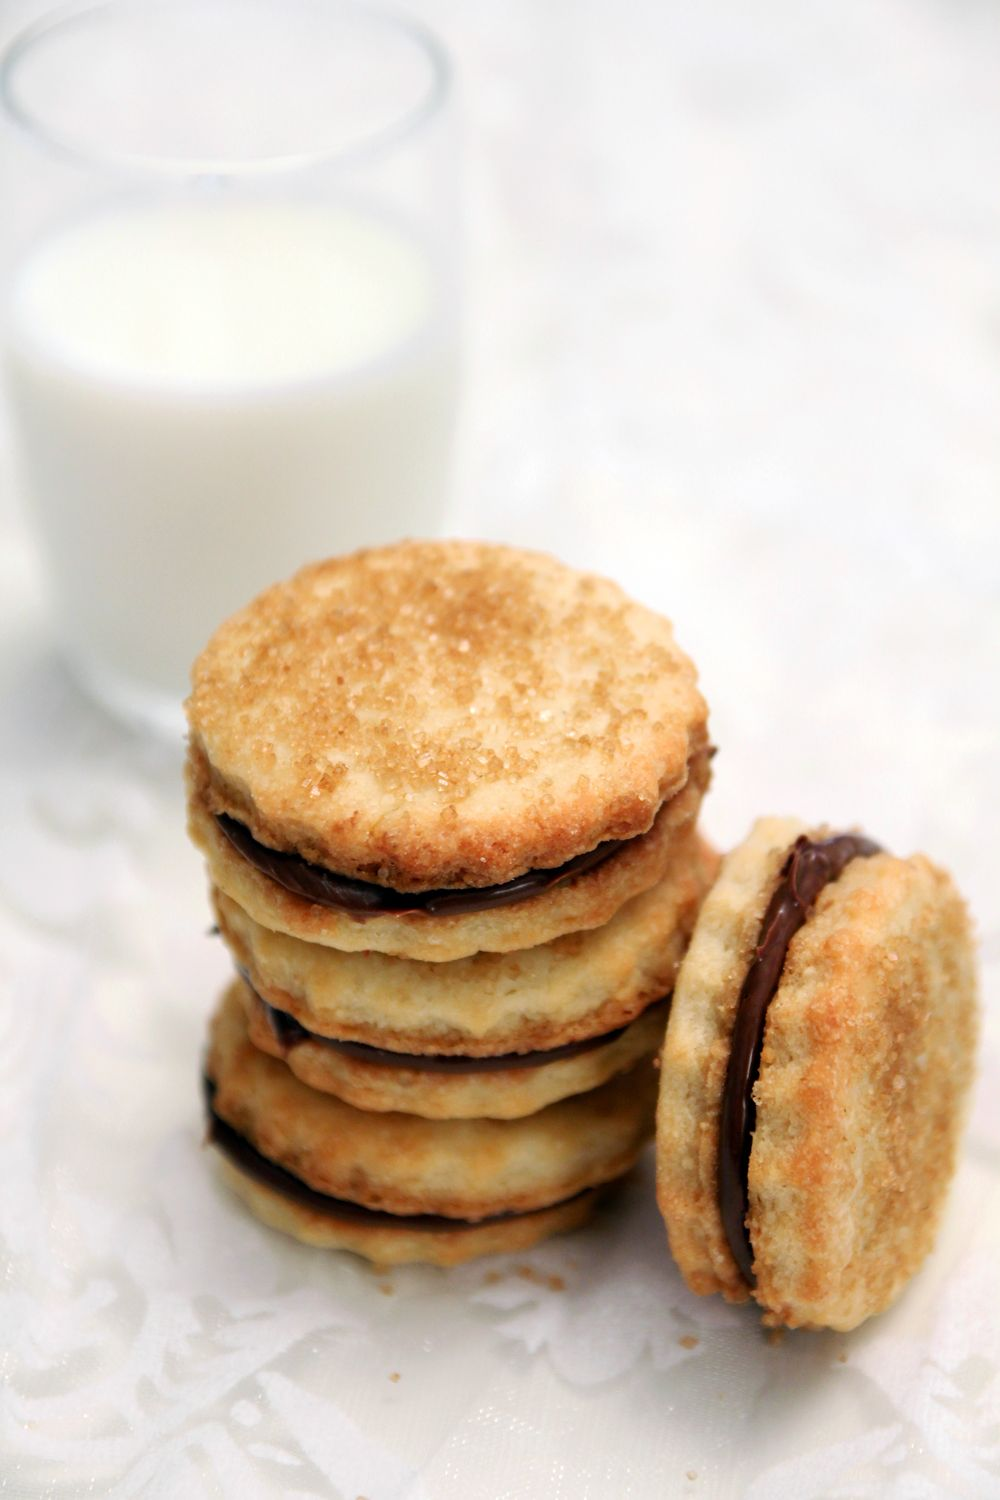 ... cookies there is. These sandwich cookies combine almond and chocolate